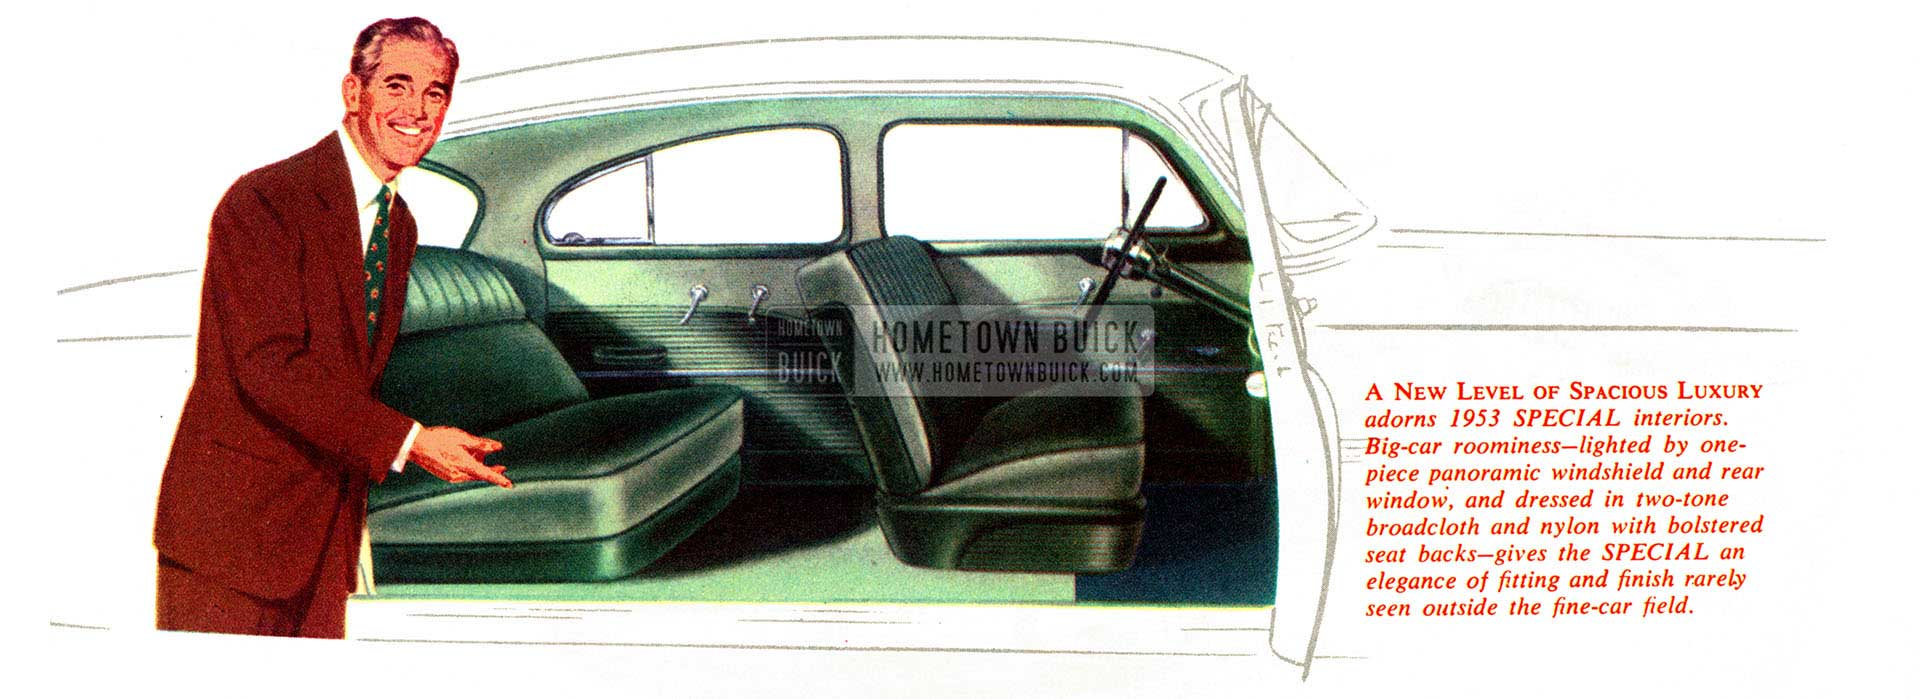 1953 Buick Interior Slider